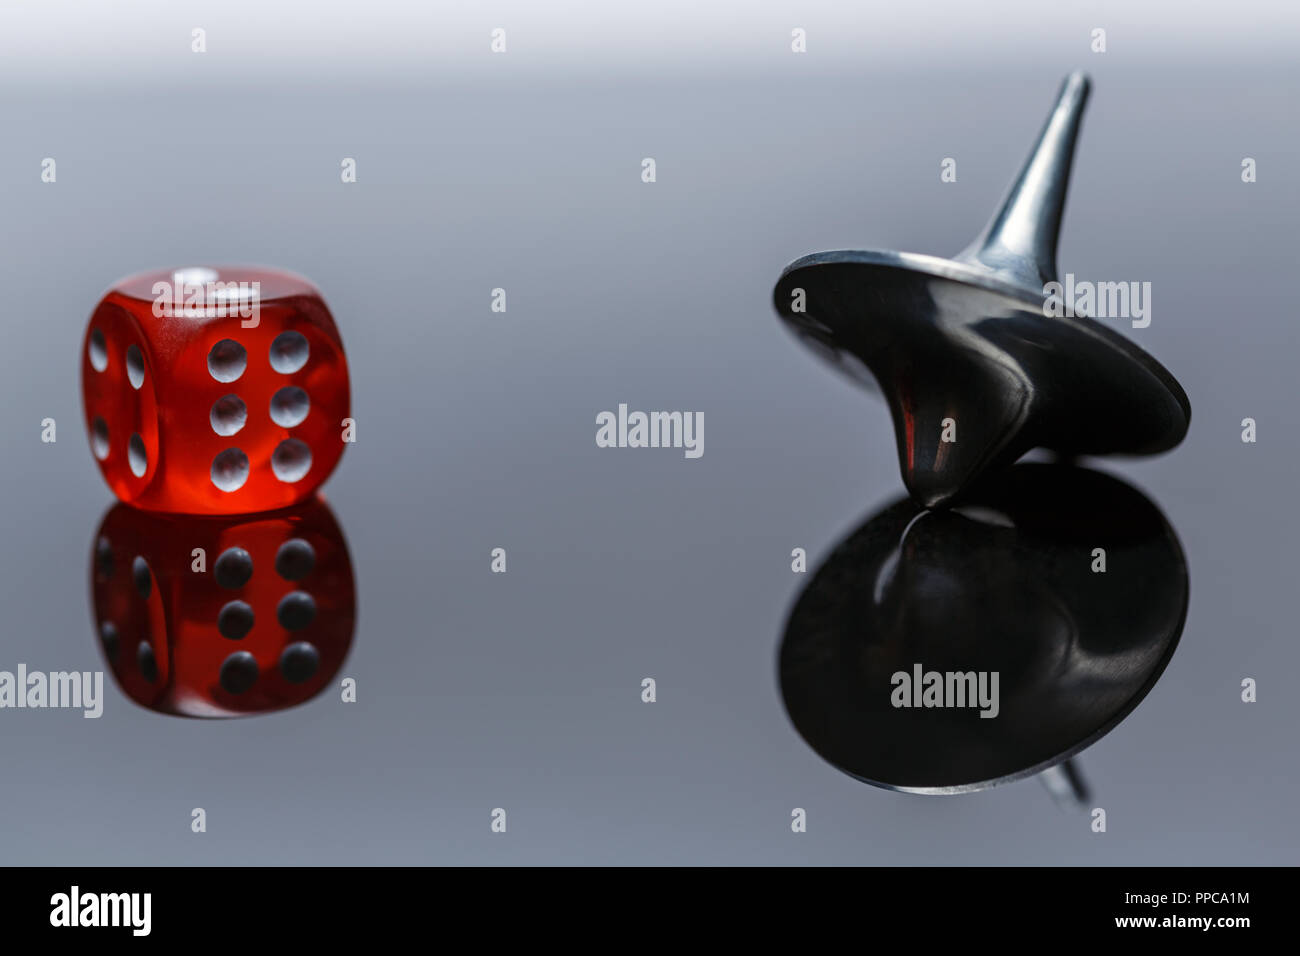 Whirligig and dice with reflection on a dark background - Stock Image